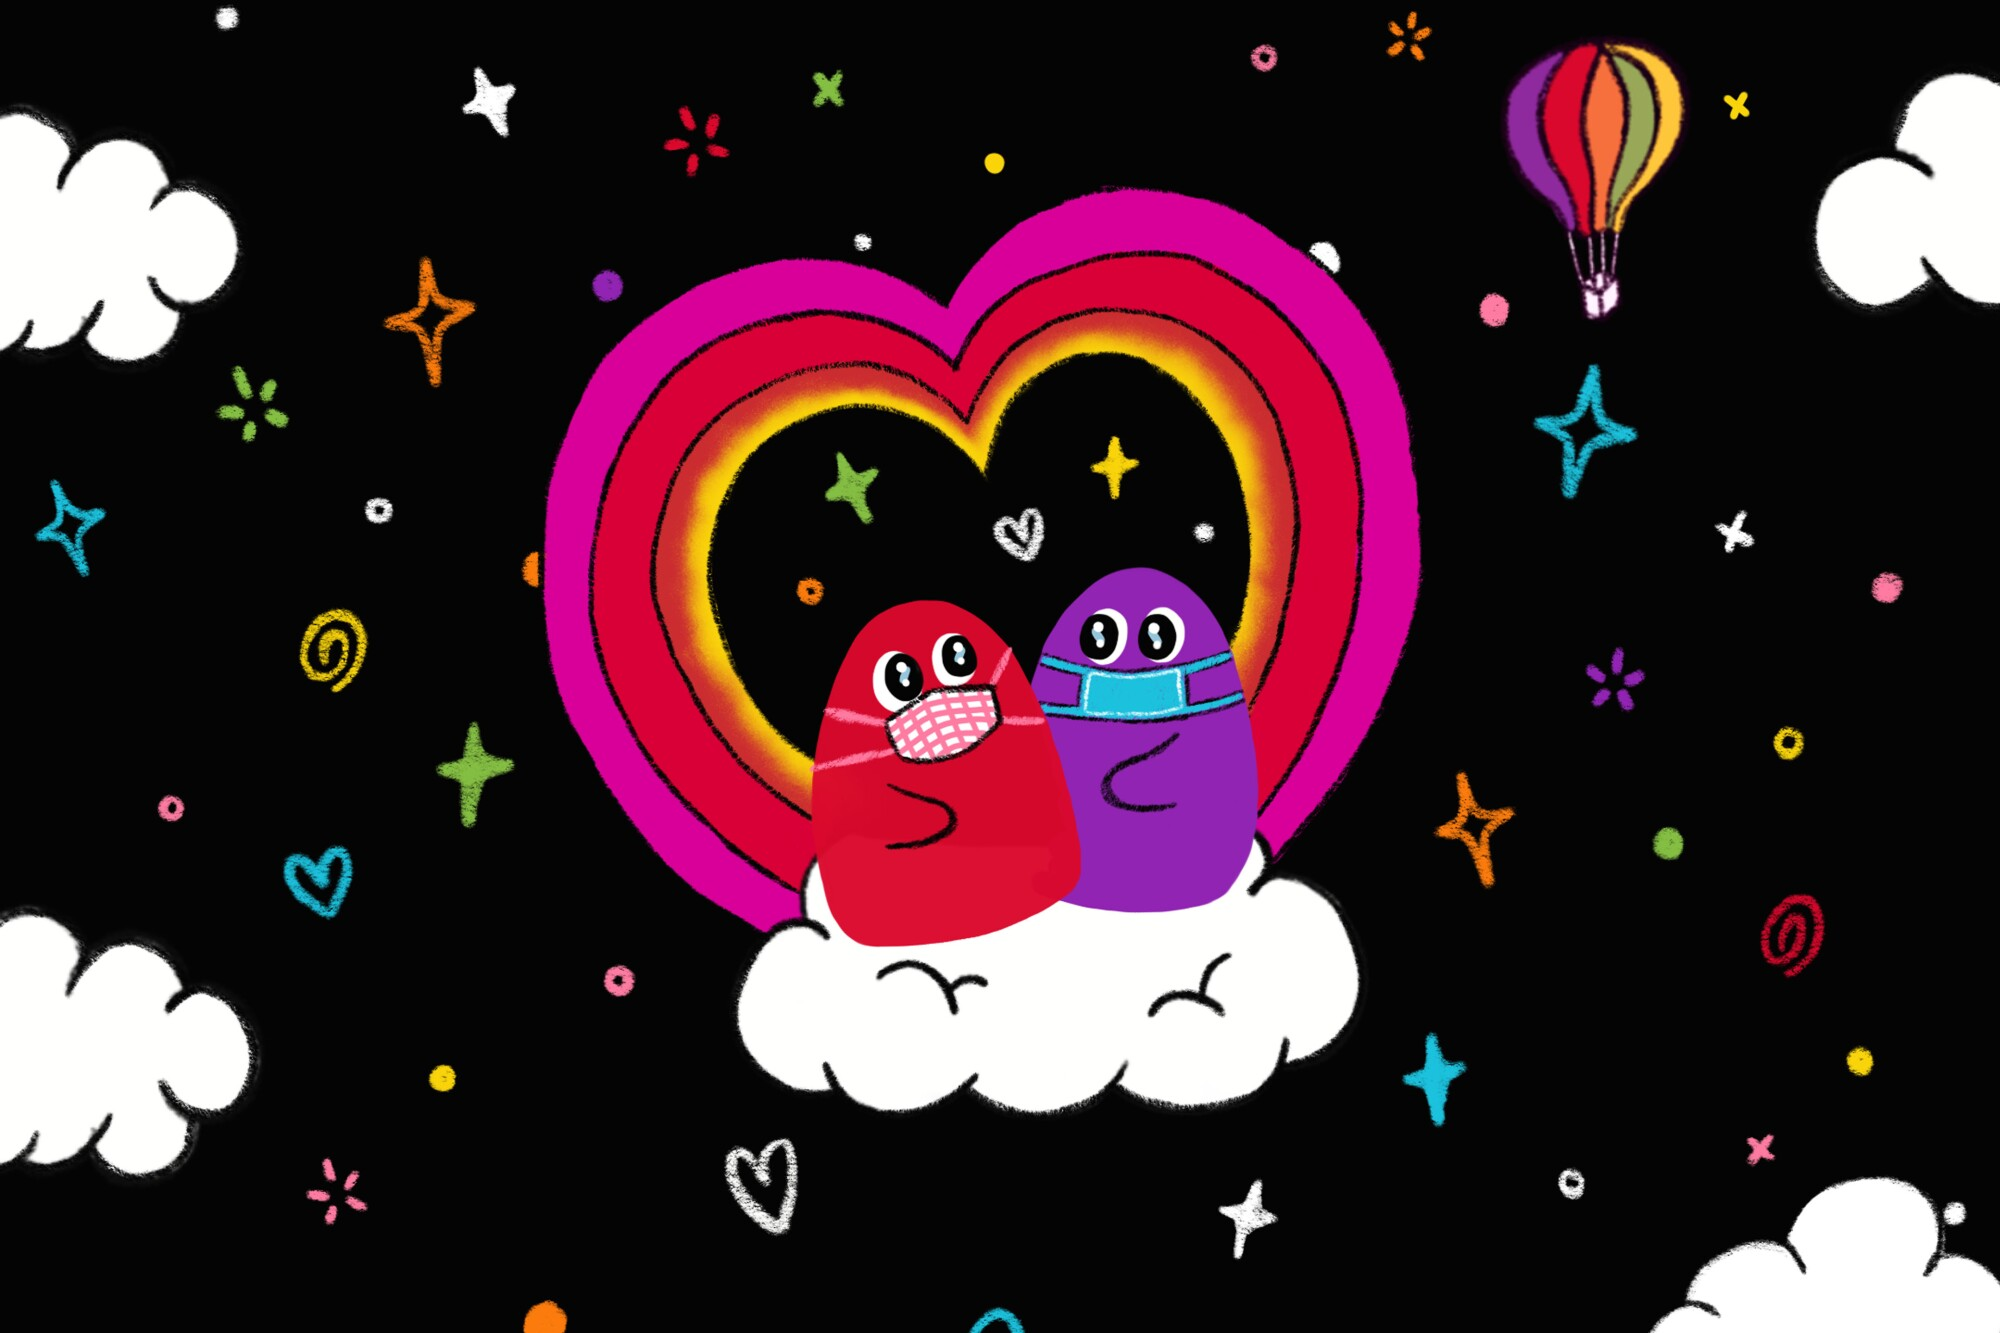 An illustration of two blobs wearing masks, sitting on a cloud in front of a rainbow heart